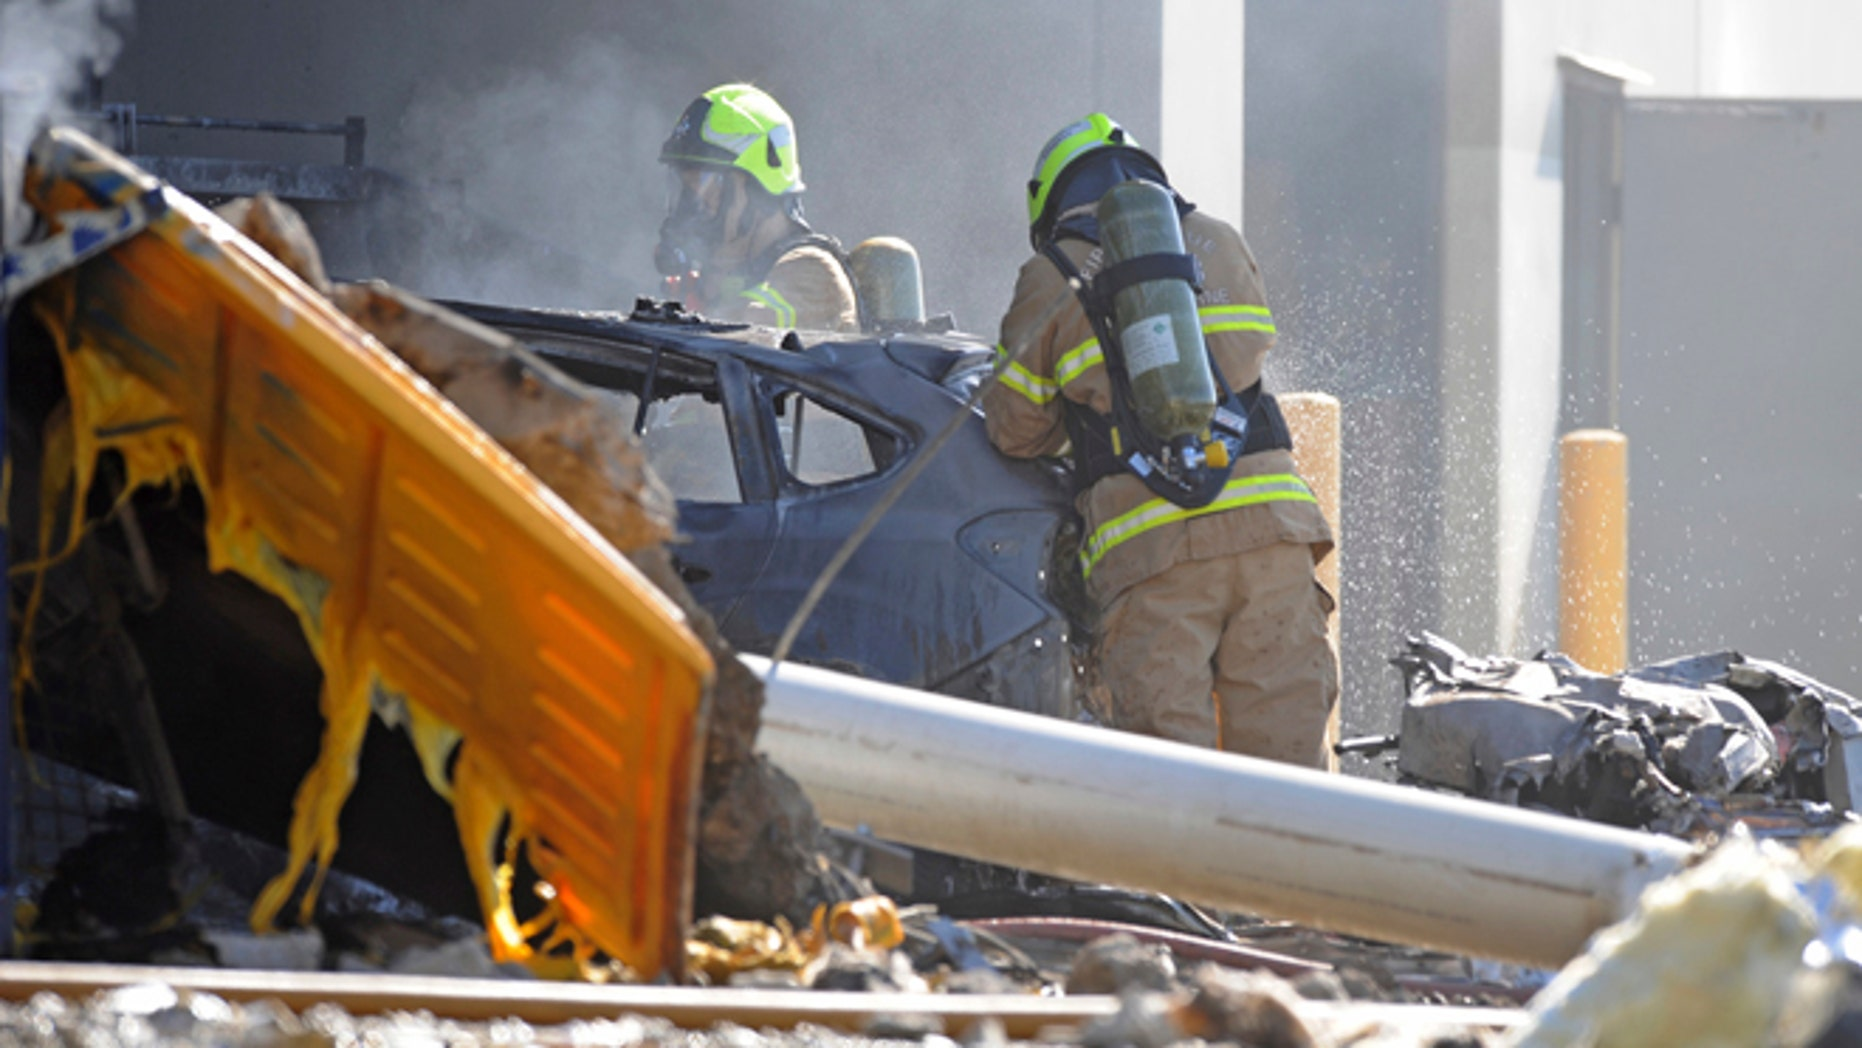 Emergency personnel work at the scene where a light plane crashed in Melbourne.